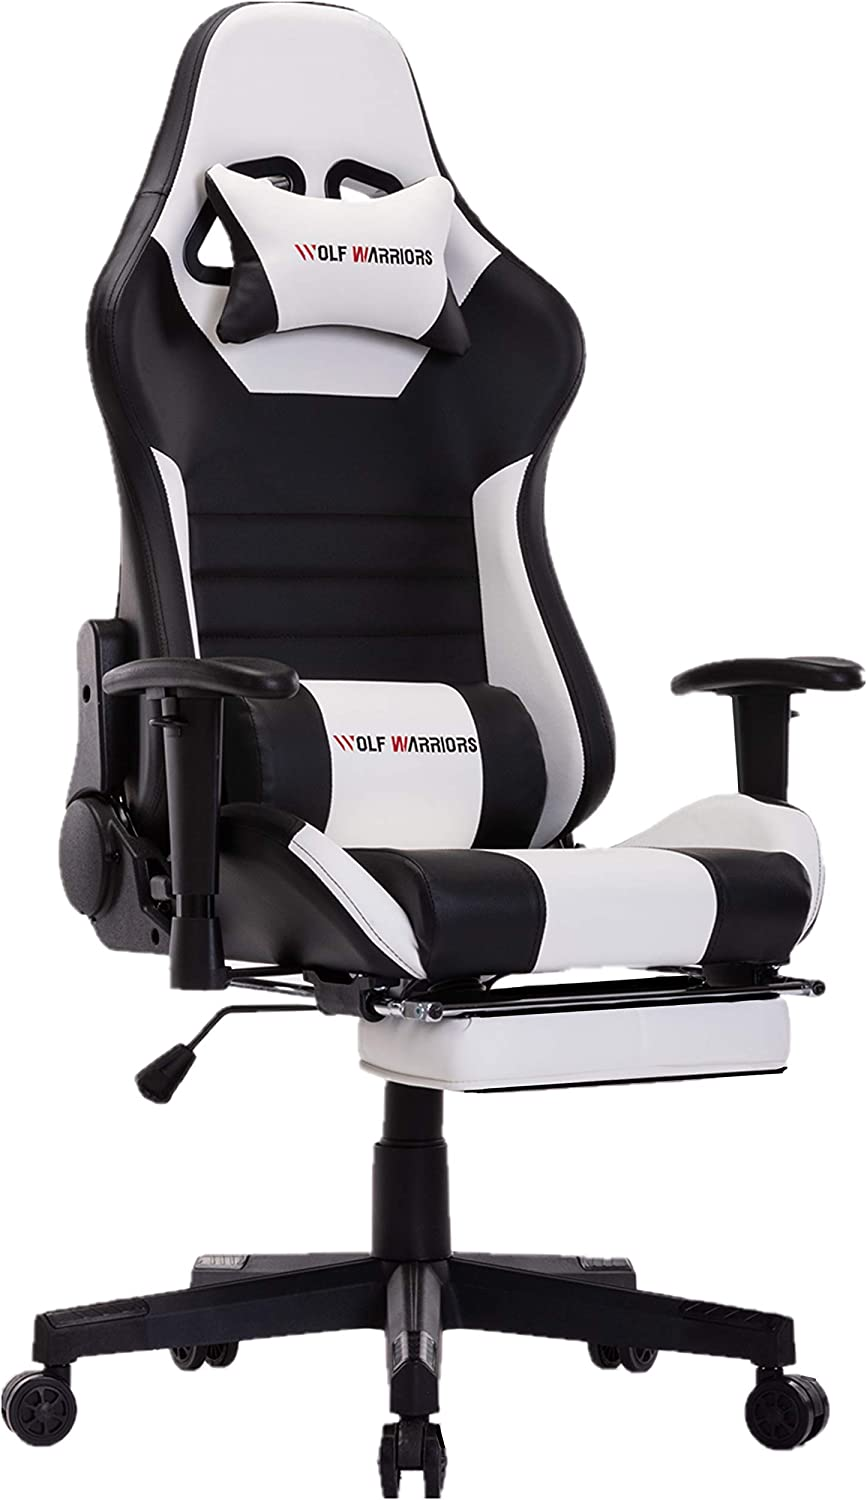 Black Gaming Chair Chaise Gaming Ergonomic Computer Game Chair with Footrest Reclining Racing Gaming Chair E-Sport Chair with Lumbar Support